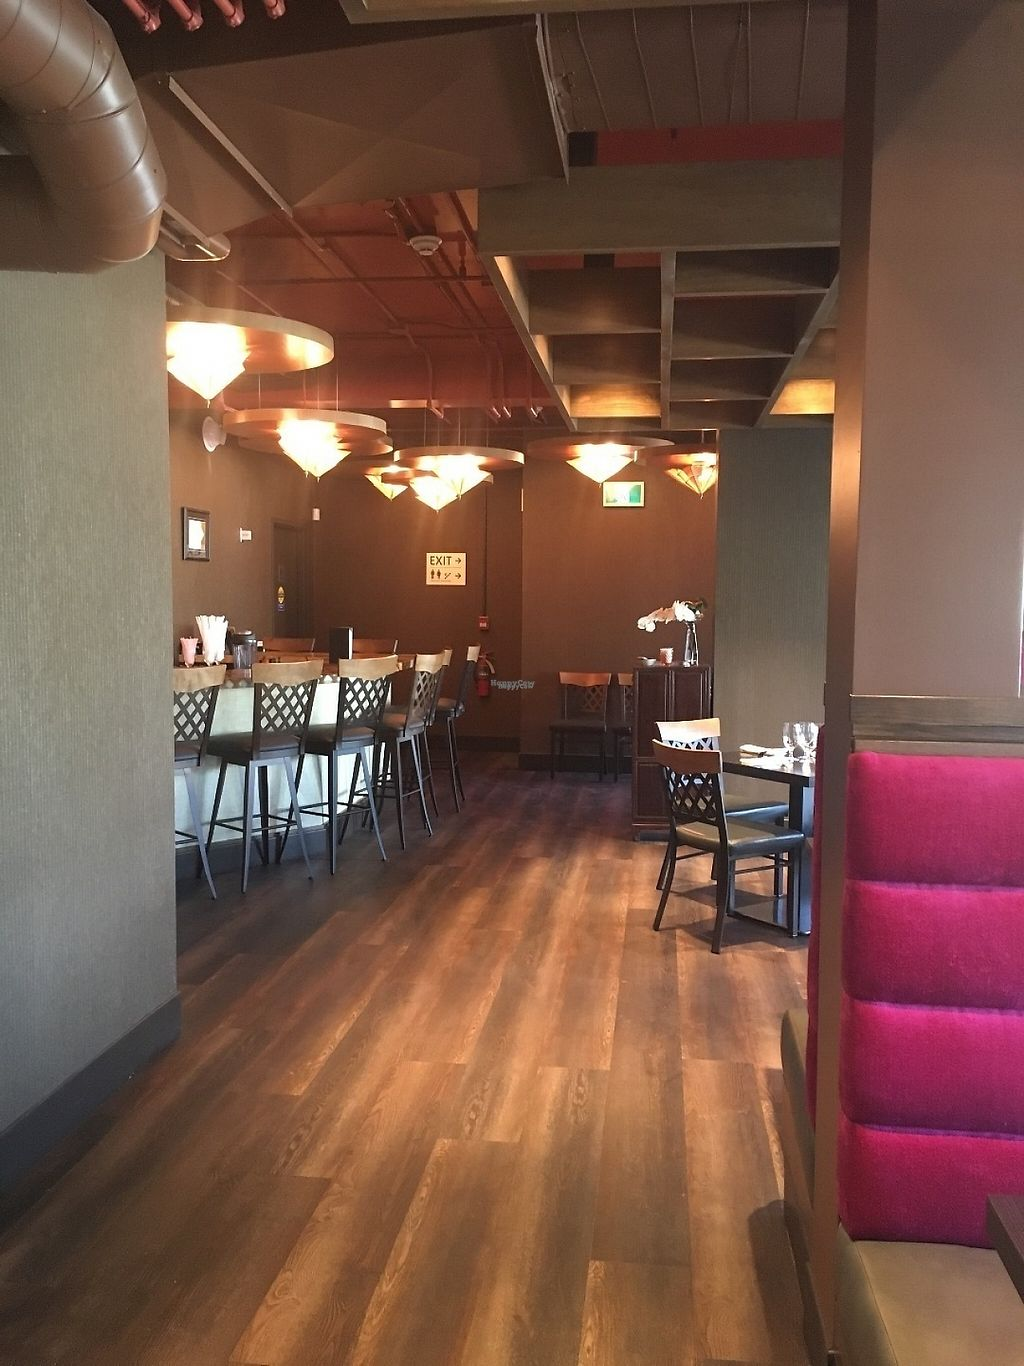 """Photo of Niagara's Finest Thai  by <a href=""""/members/profile/Brena"""">Brena</a> <br/>Restaurant Interior 1 <br/> April 26, 2017  - <a href='/contact/abuse/image/90950/252815'>Report</a>"""